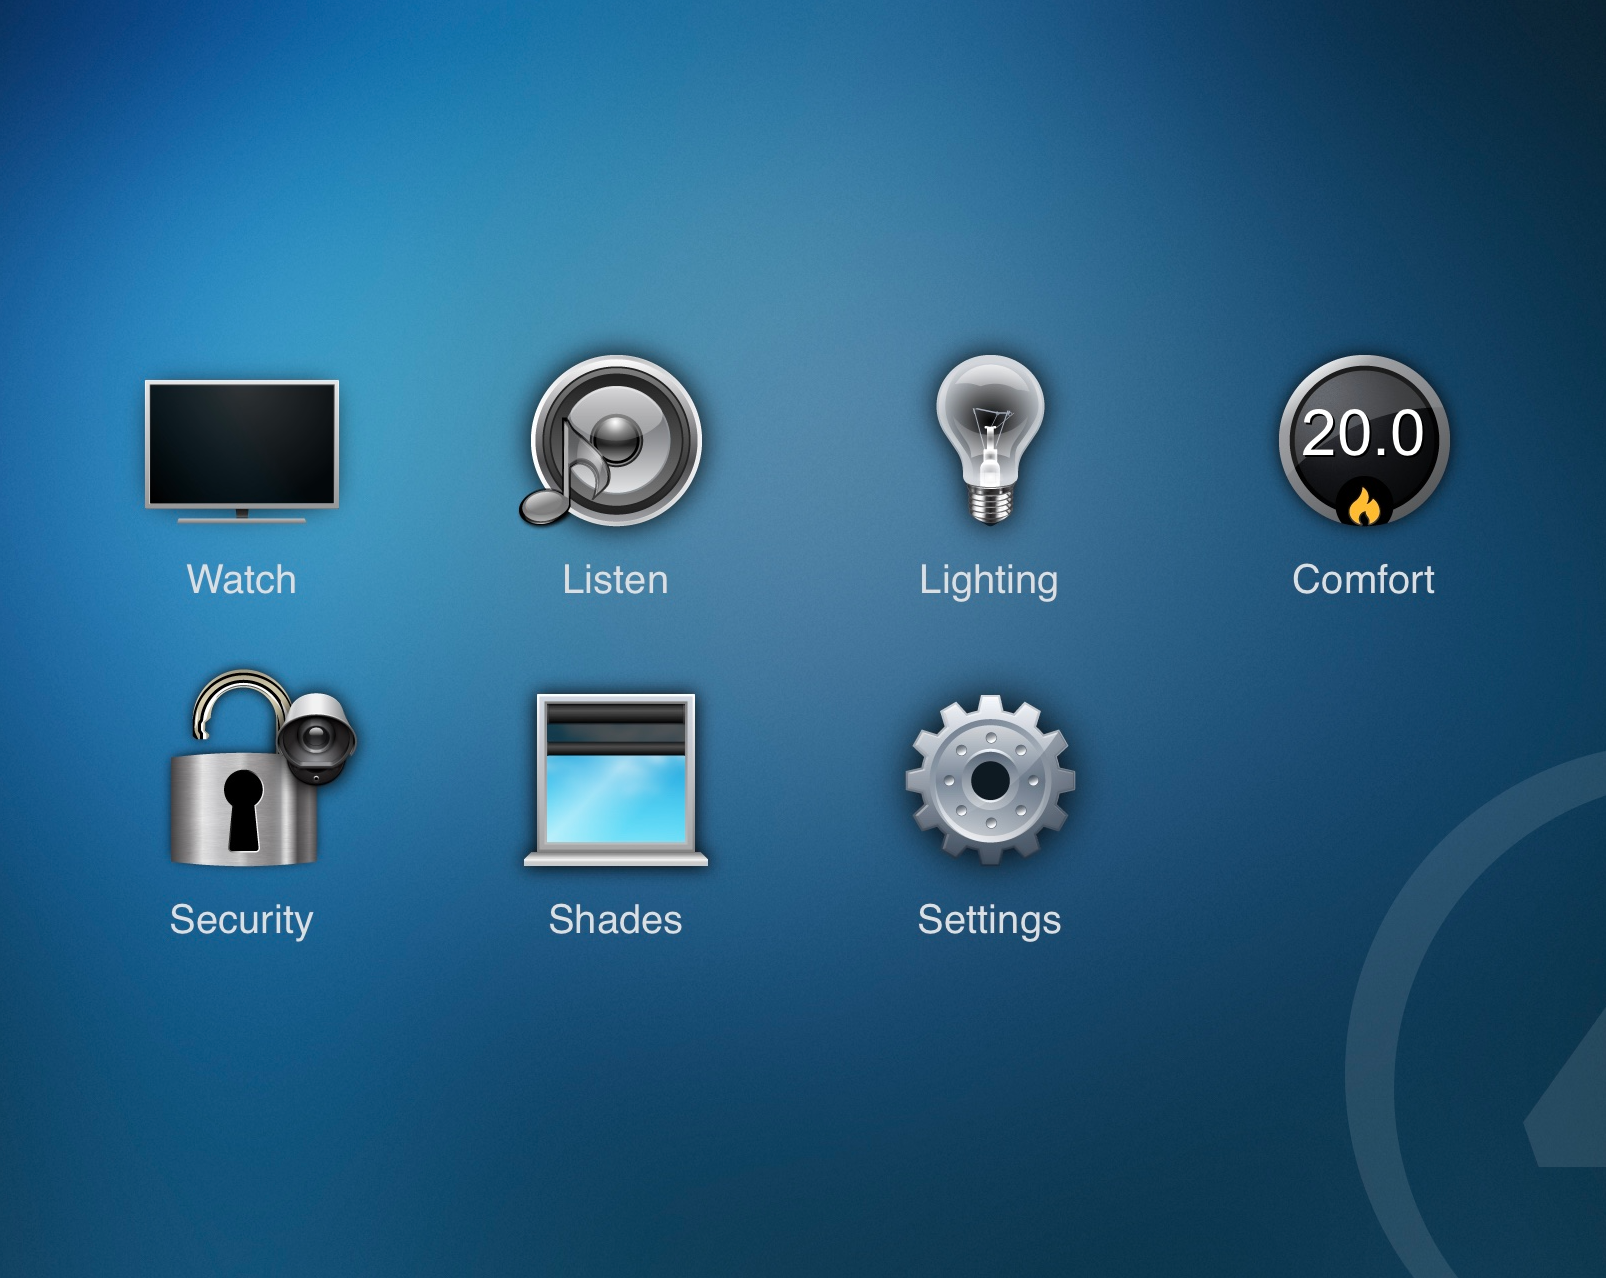 One app controls your home. Control lights, adjust the